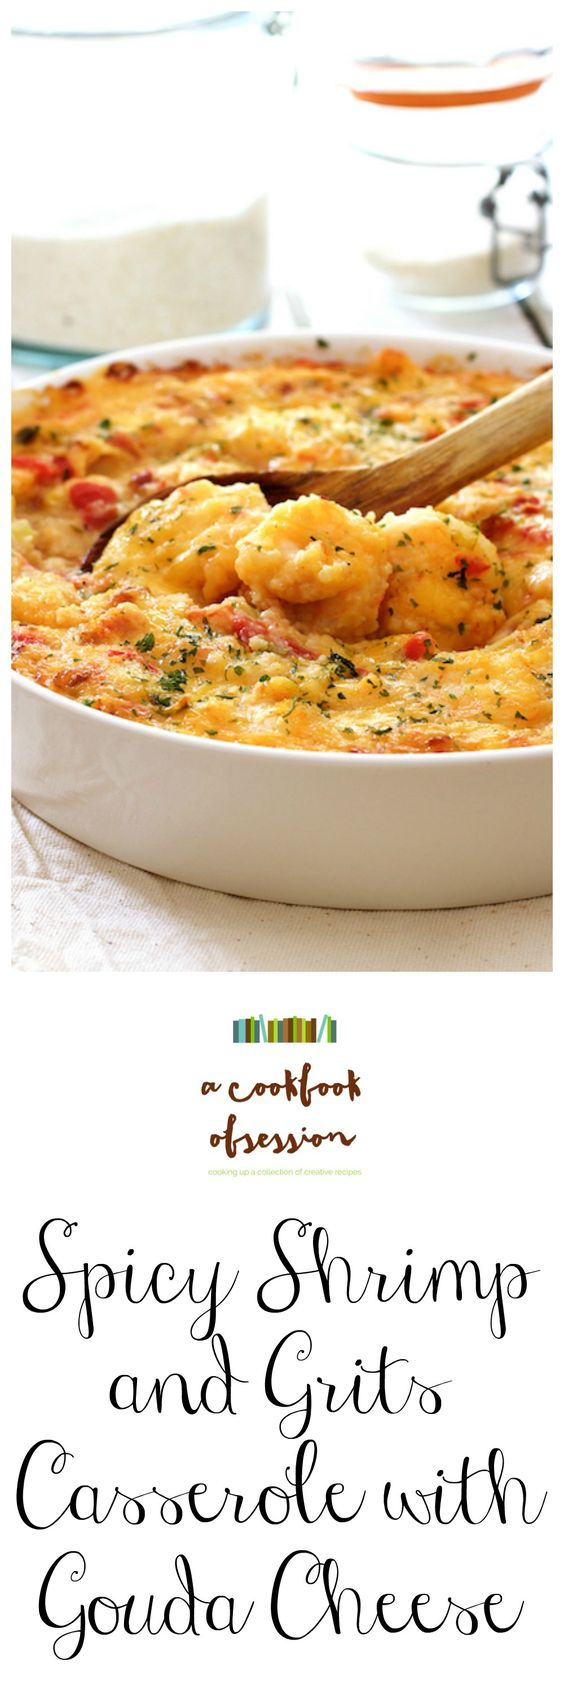 The classic Southern comfort food combination in an easy, make-ahead casserole.